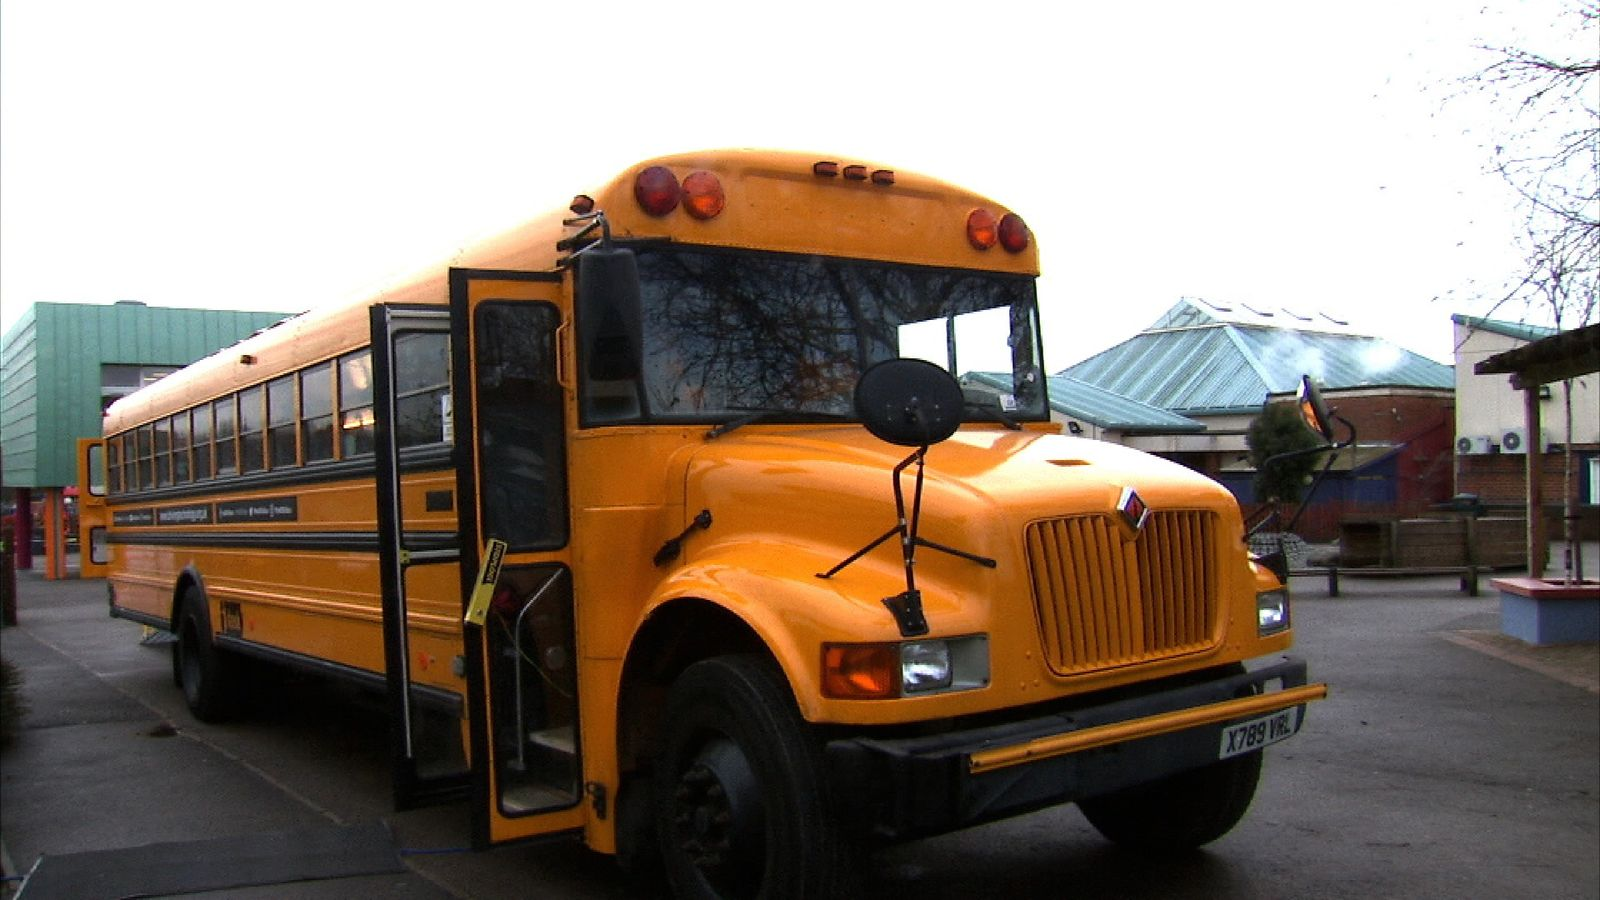 Swipe takes a look at The Ideas Bus, which brings technology to schools